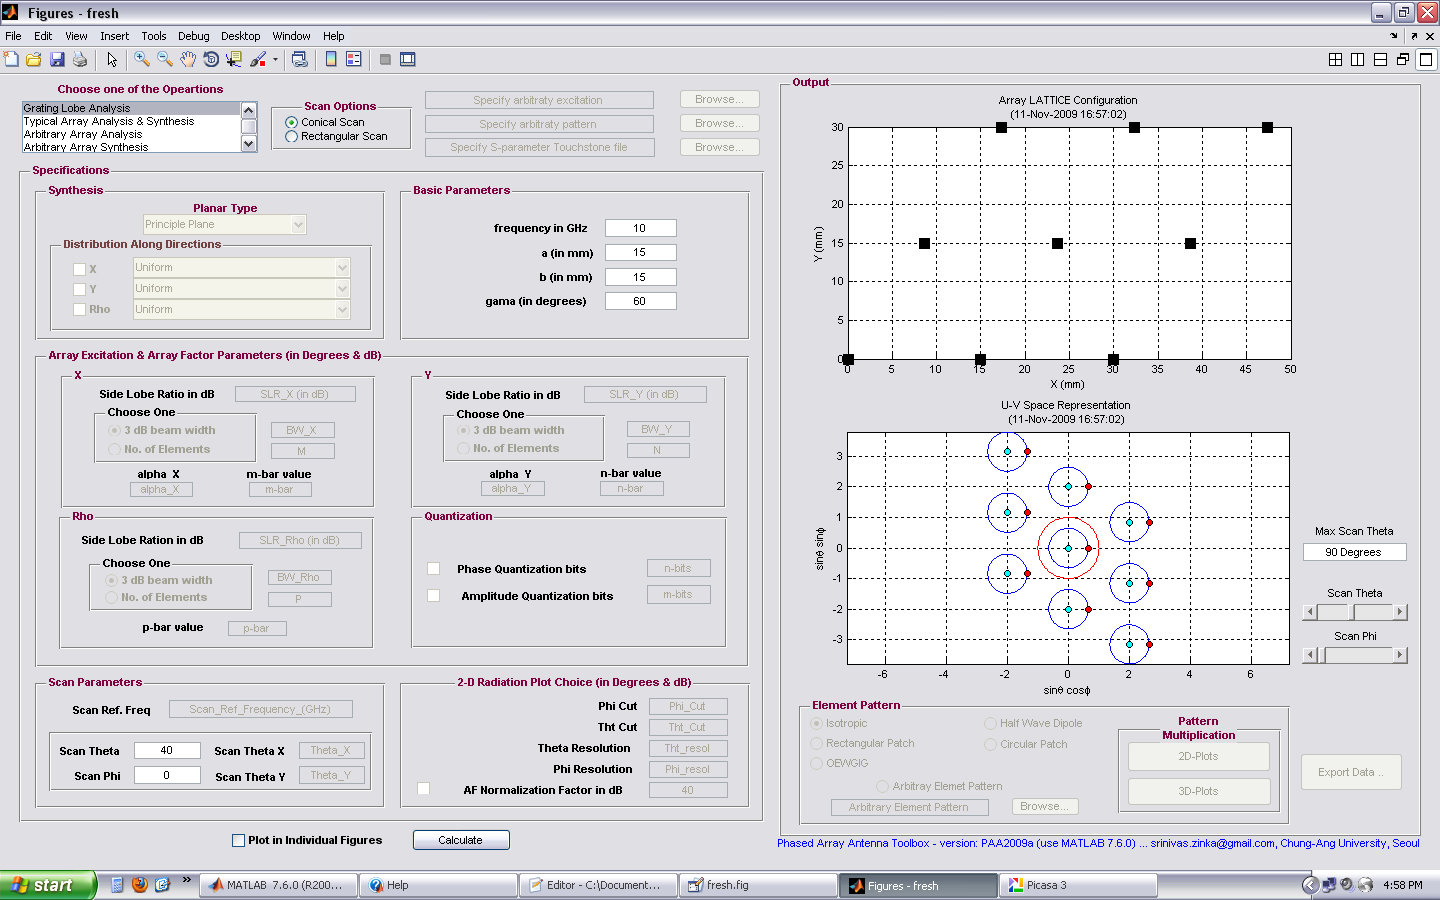 MATLAB Based Toolbox for Phased Array Antenna Design and Analysis